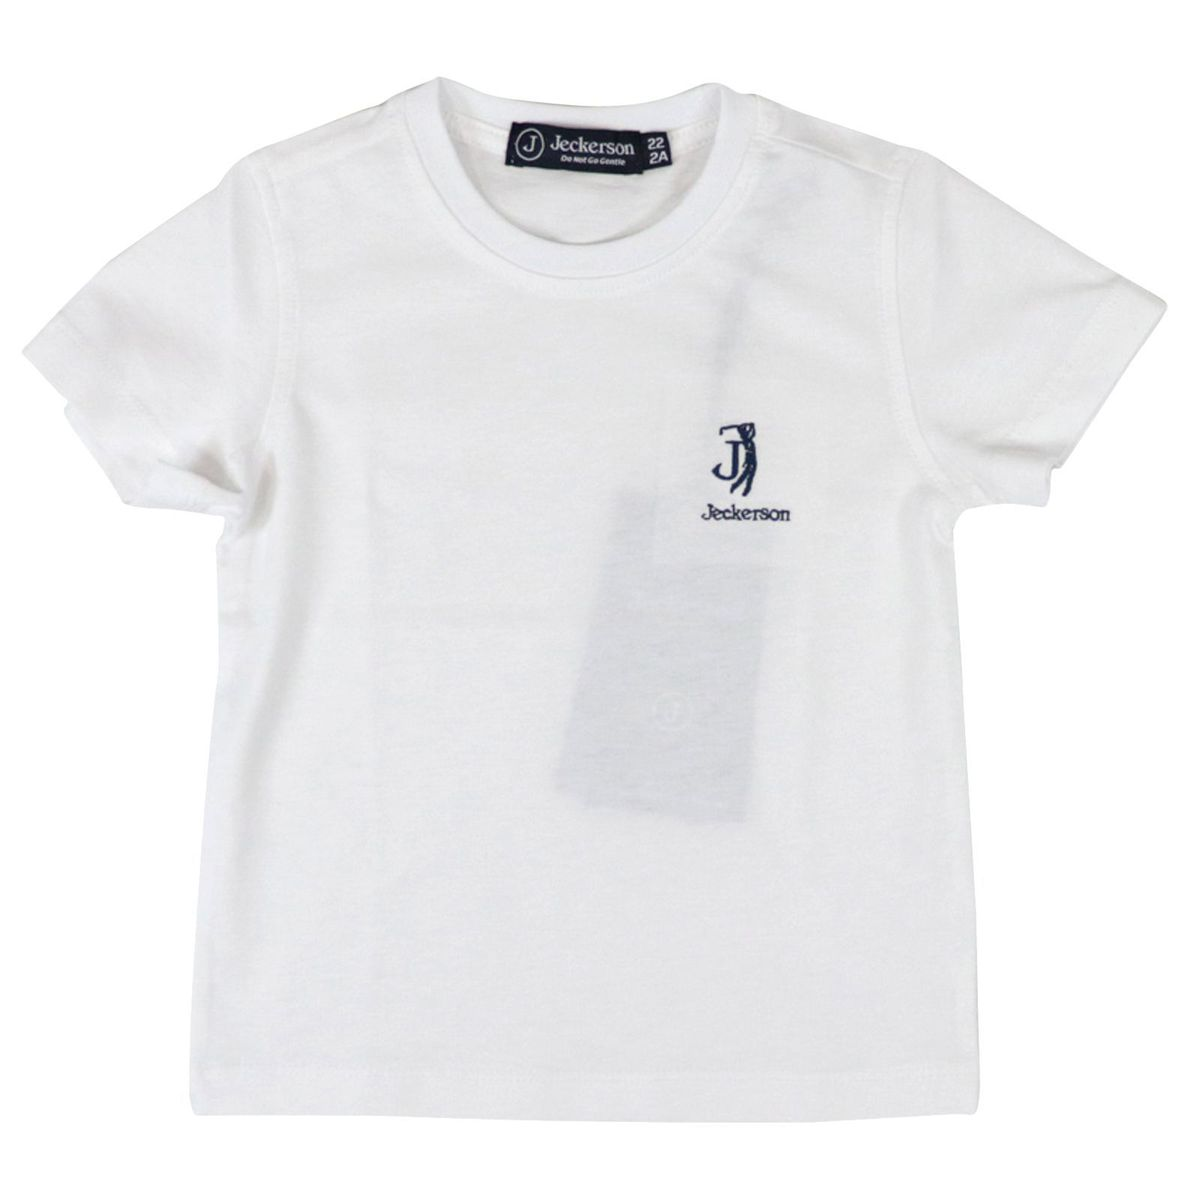 Short-sleeved cotton baby T-shirt with embroidered logo White / blue Jeckerson